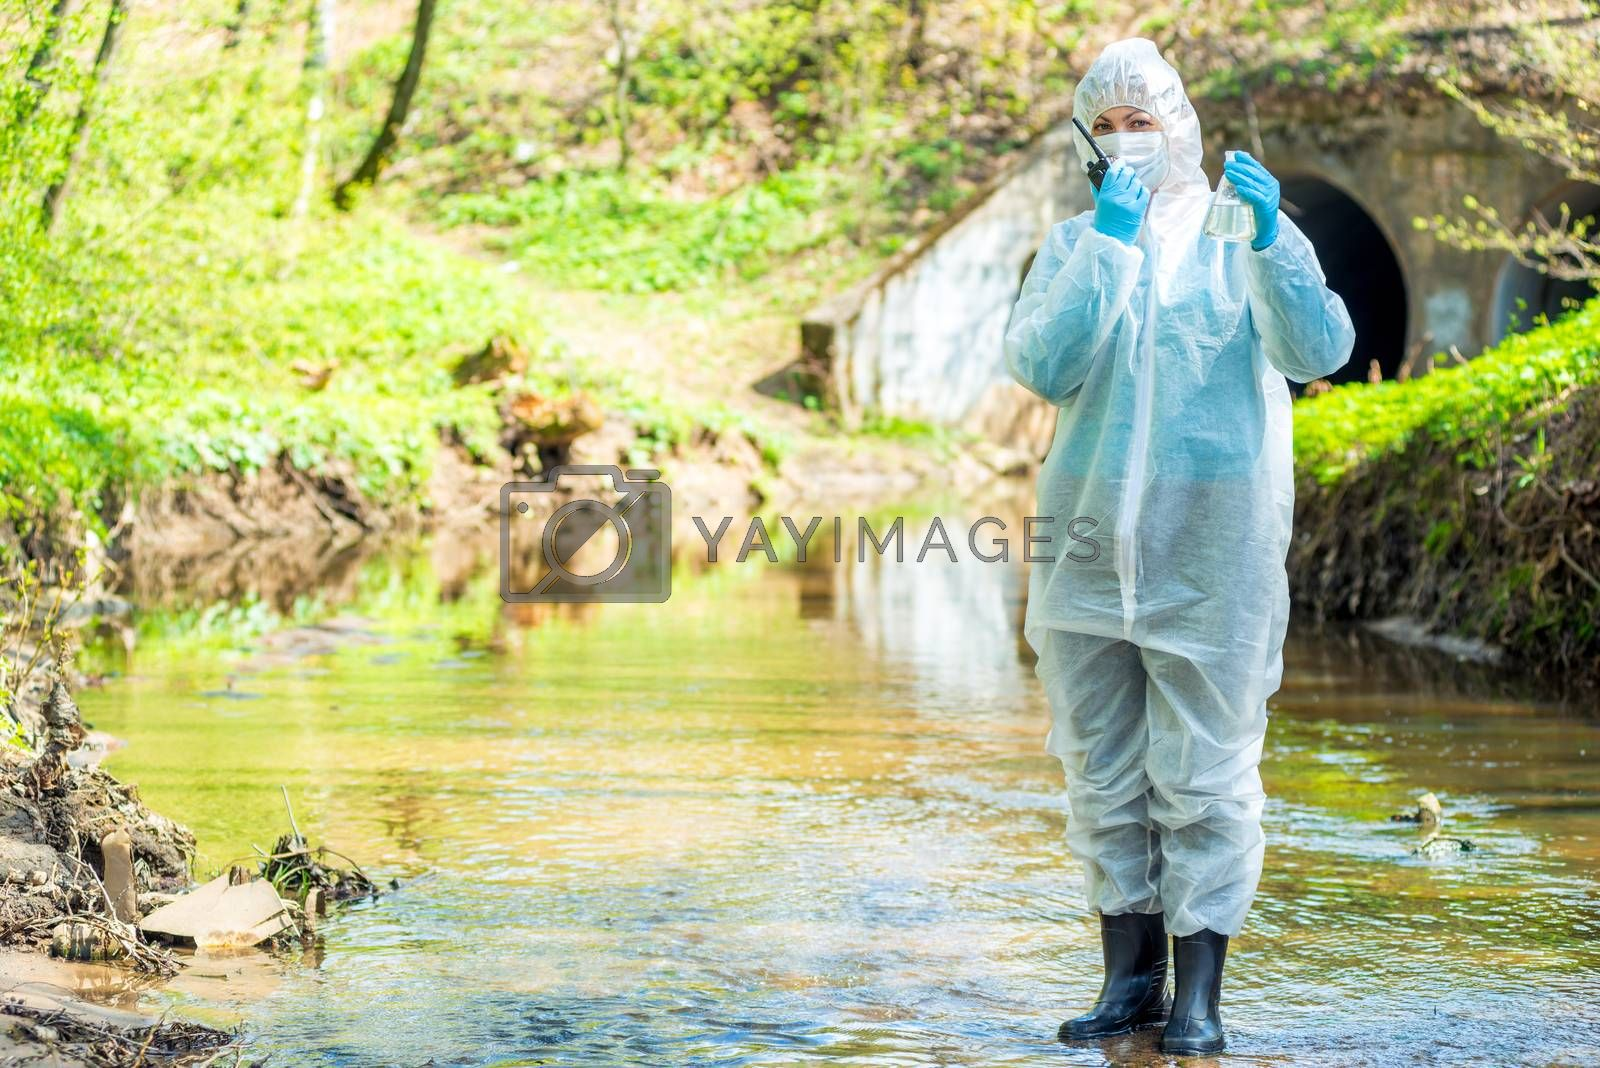 concept photo ecological disaster, the work of the ecologist researcher